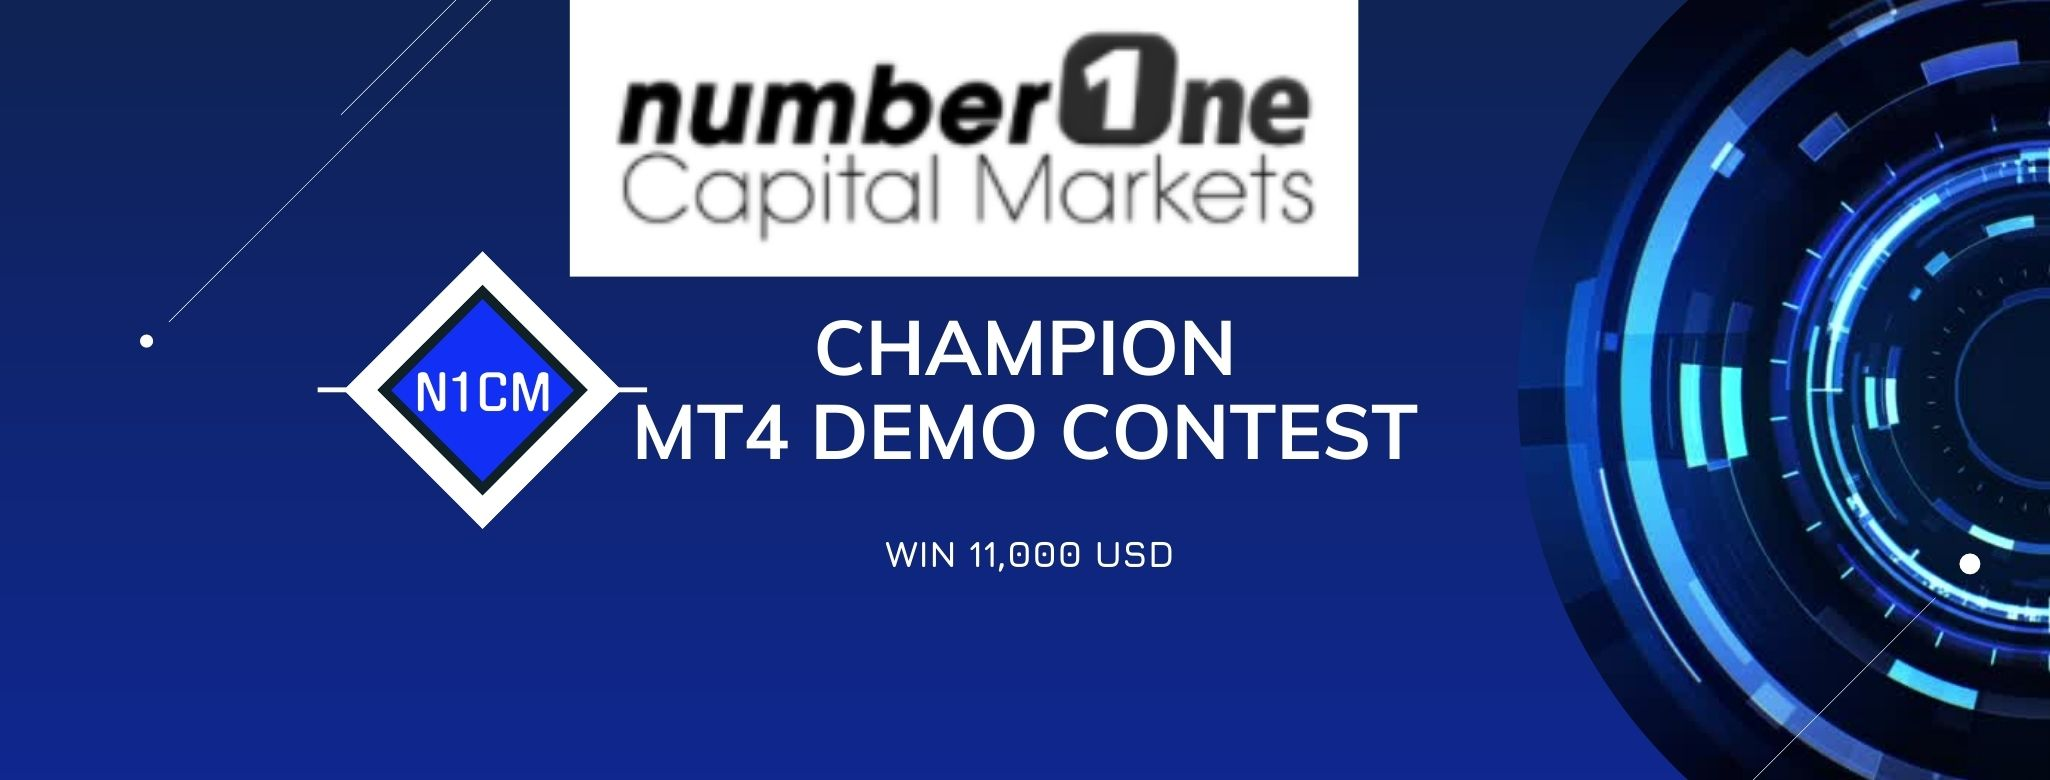 Win $5000 To Join Champion MT4 Demo Contest on N1CM